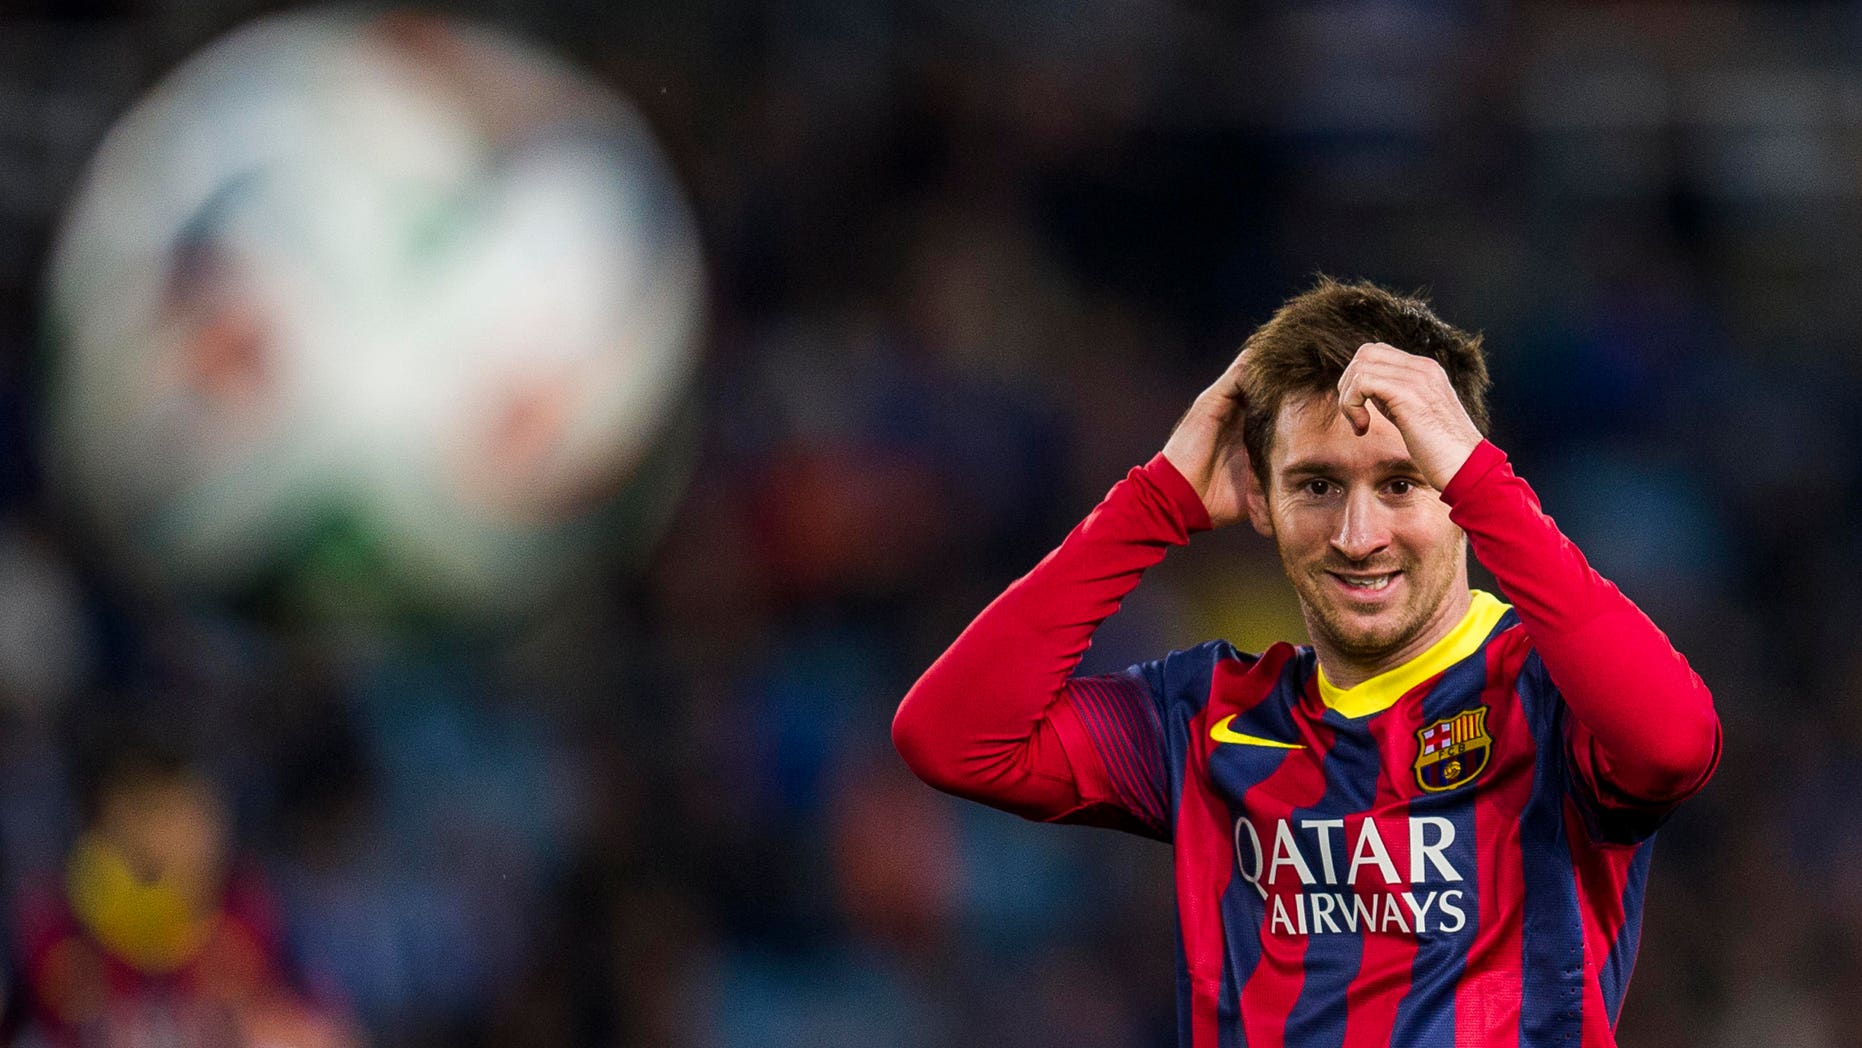 SAN SEBASTIAN, SPAIN - FEBRUARY 12:  Lionel Messi of FC Barcelona reacts during the Copa del Rey Semi-Final first leg match betweenReal Sociedad and Barcelona at Estadio Anoeta  on February 12, 2014 in San Sebastian, Spain.  (Photo by Juan Manuel Serrano Arce/Getty Images)